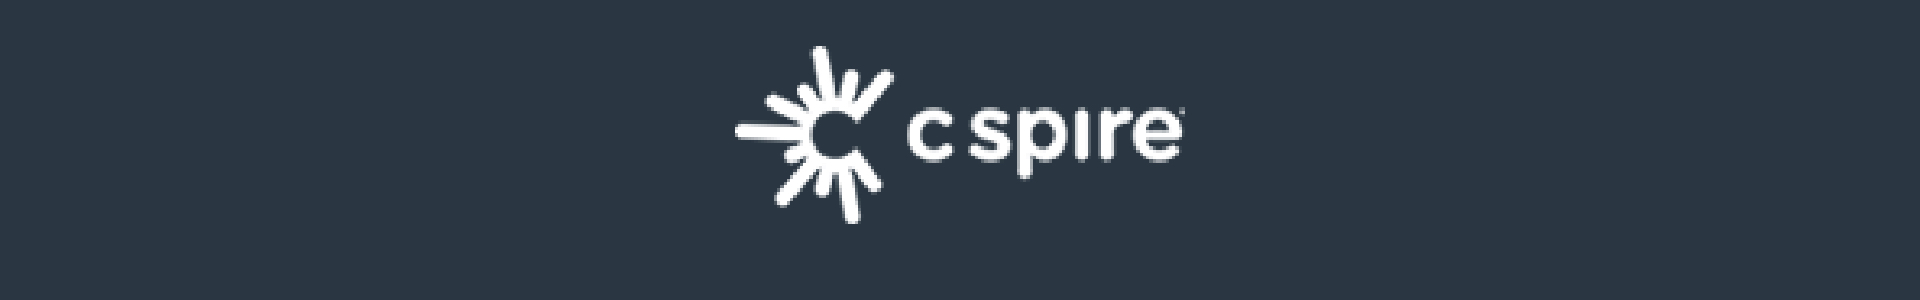 Spinpanel helps c spire with billing and automation